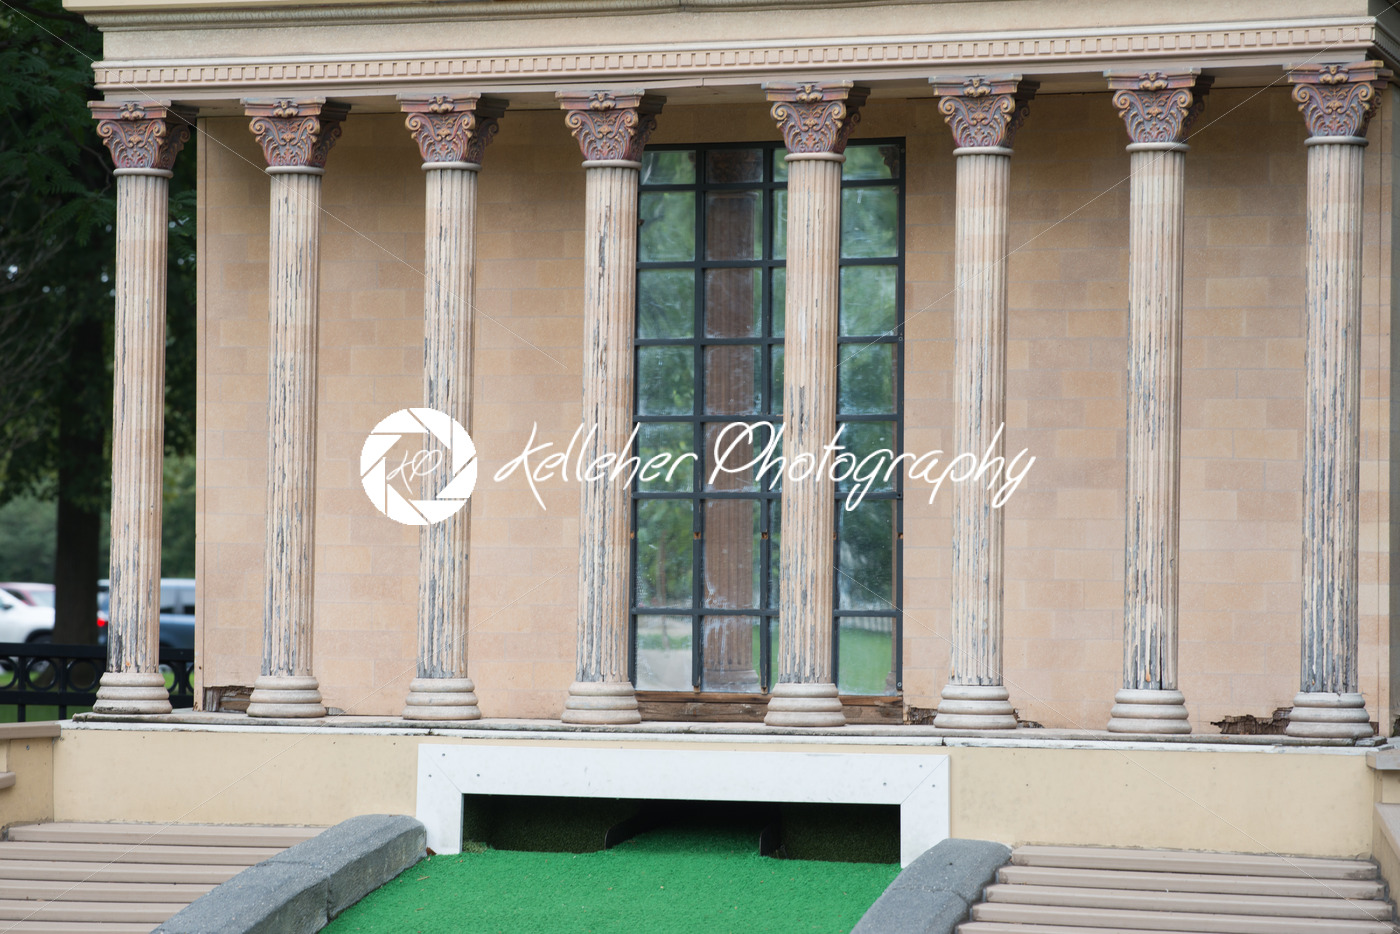 PHILADELPHIA, USA – AUGUST 12: Minature Golf course with Philadelphia themed structures in Franklin Square in Center City Philadelphia on August 12, 2017 - Kelleher Photography Store